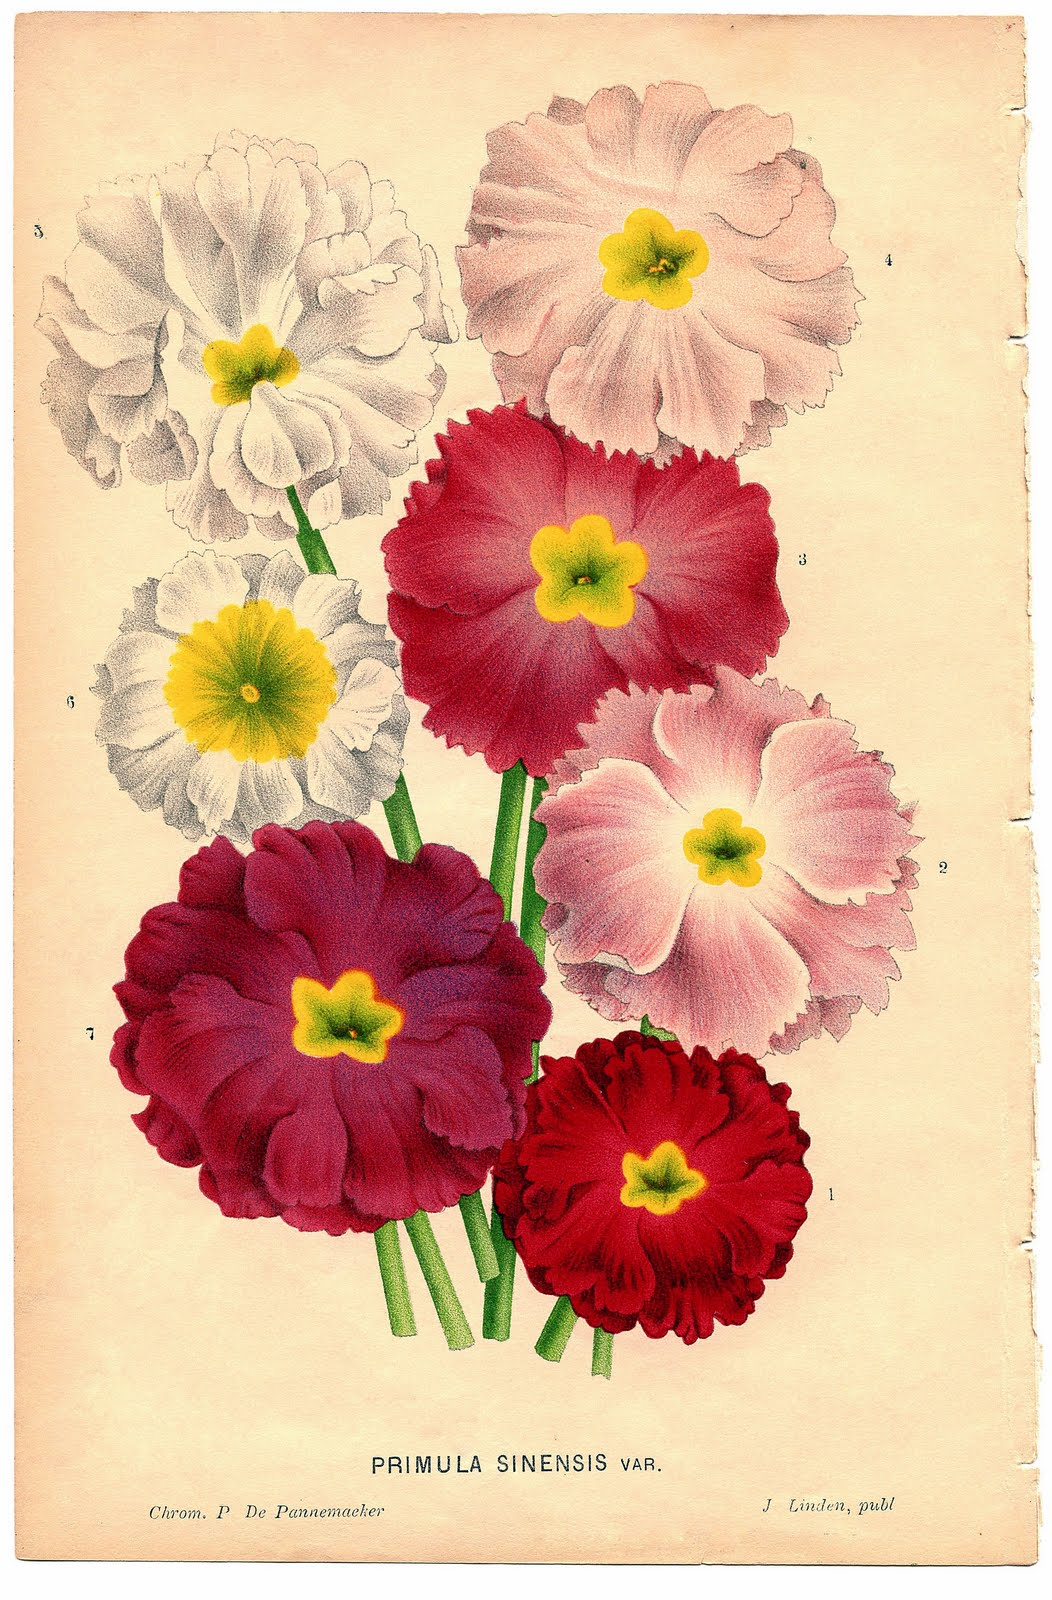 Antique Botanical Ephemera Image - Flowers - The Graphics Fairy